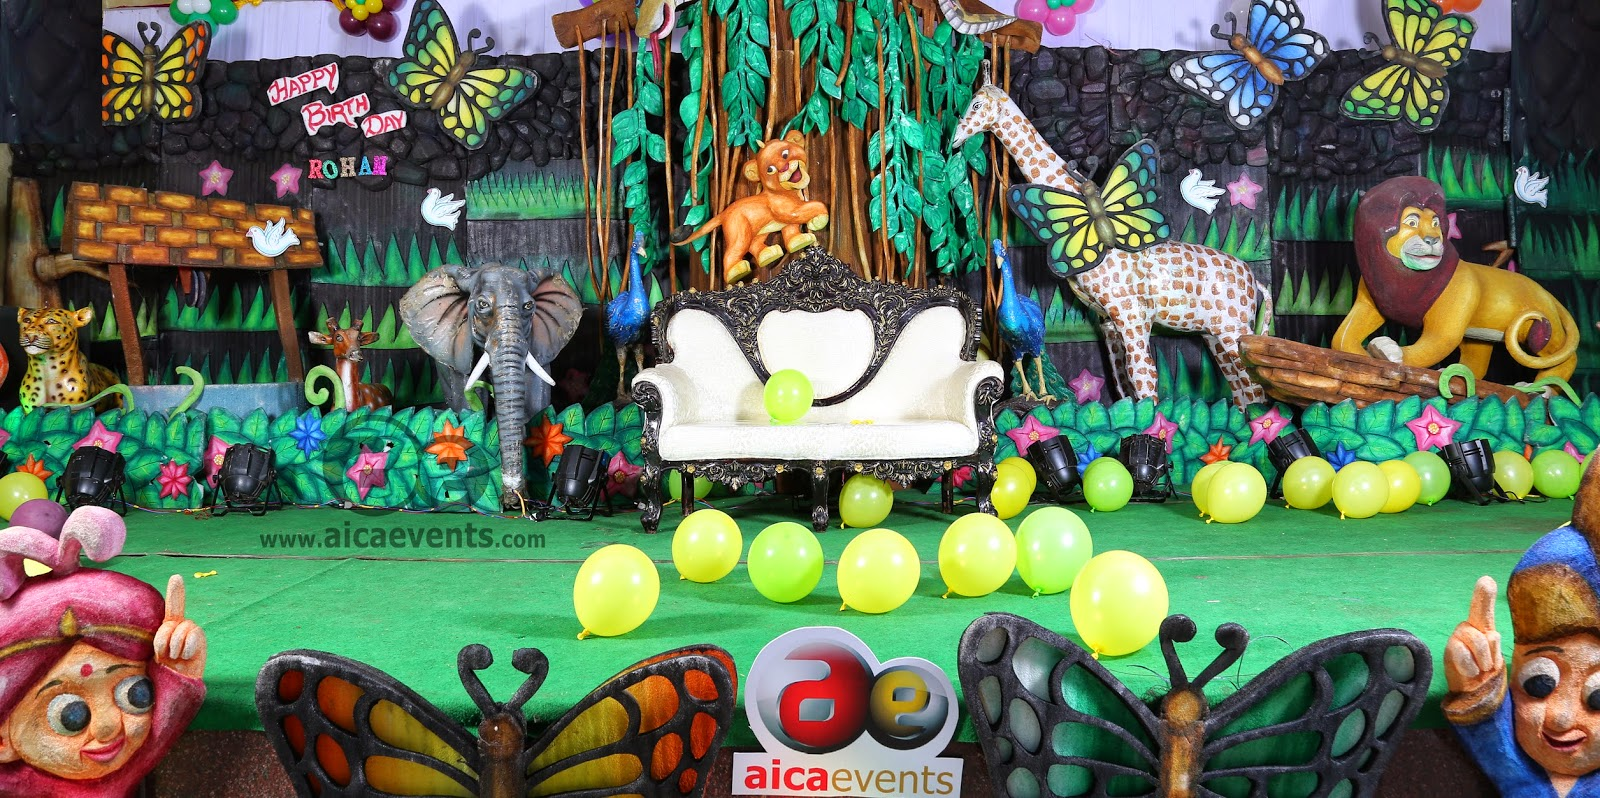 Birthday Decorations Jungle Image Inspiration of Cake and